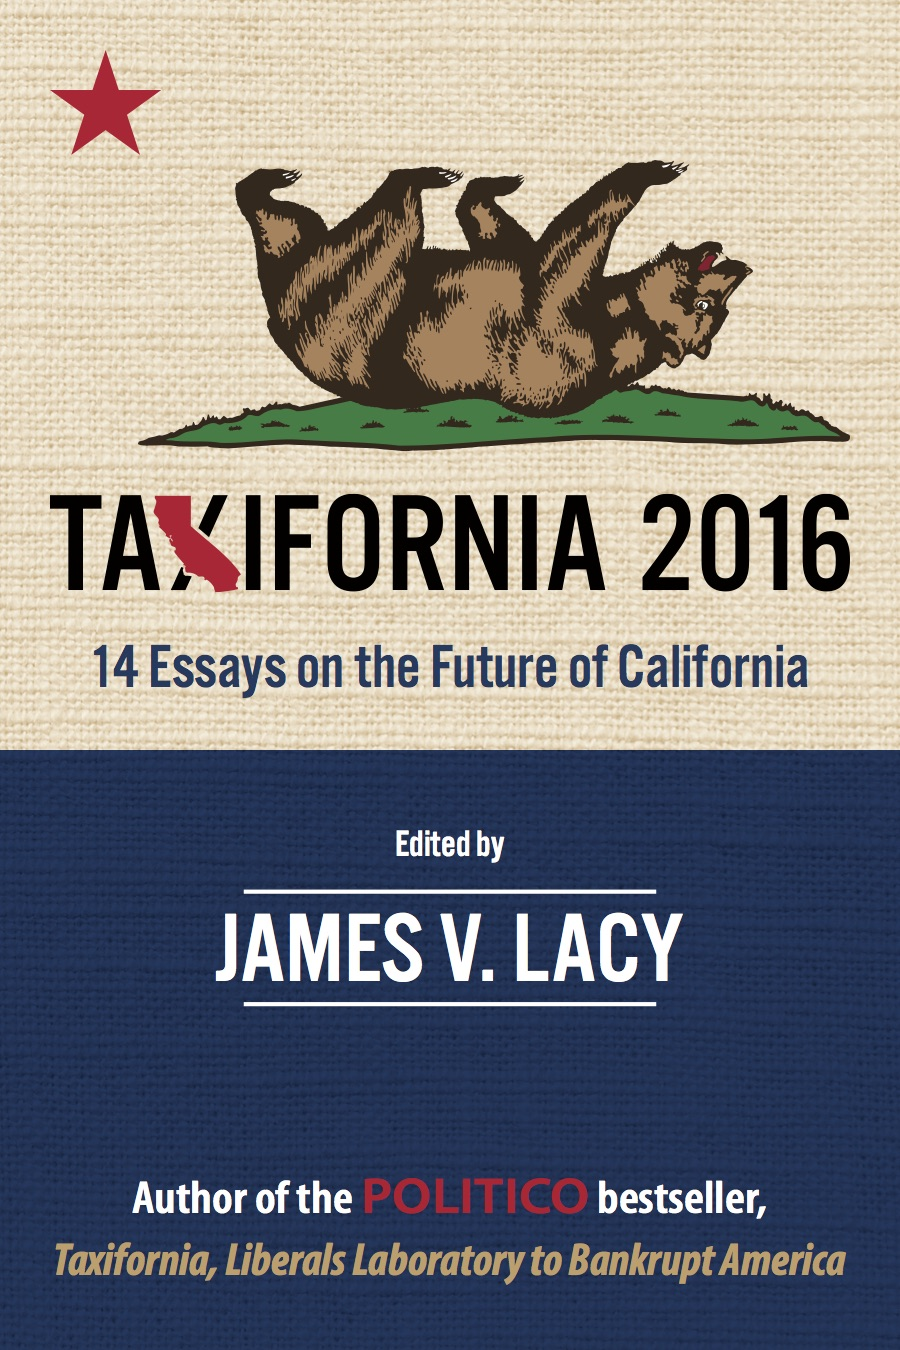 taxifornia essays on the future of california just taxifornia 2016 14 essays on the future of california just released california political review